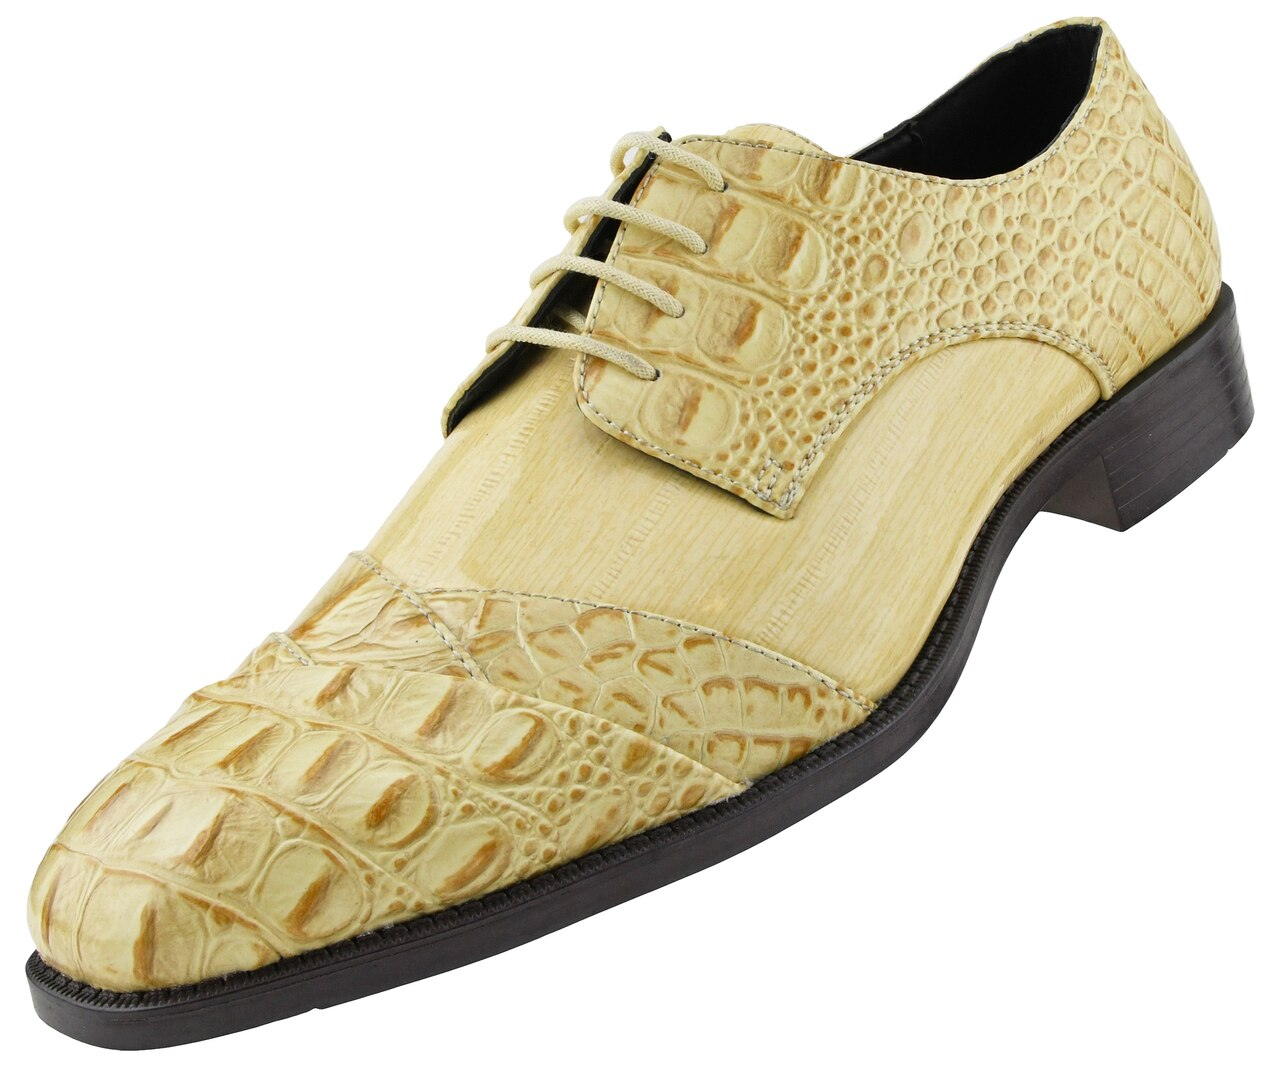 Men Dress Shoes-Alligator-Taupe - Church Suits For Less